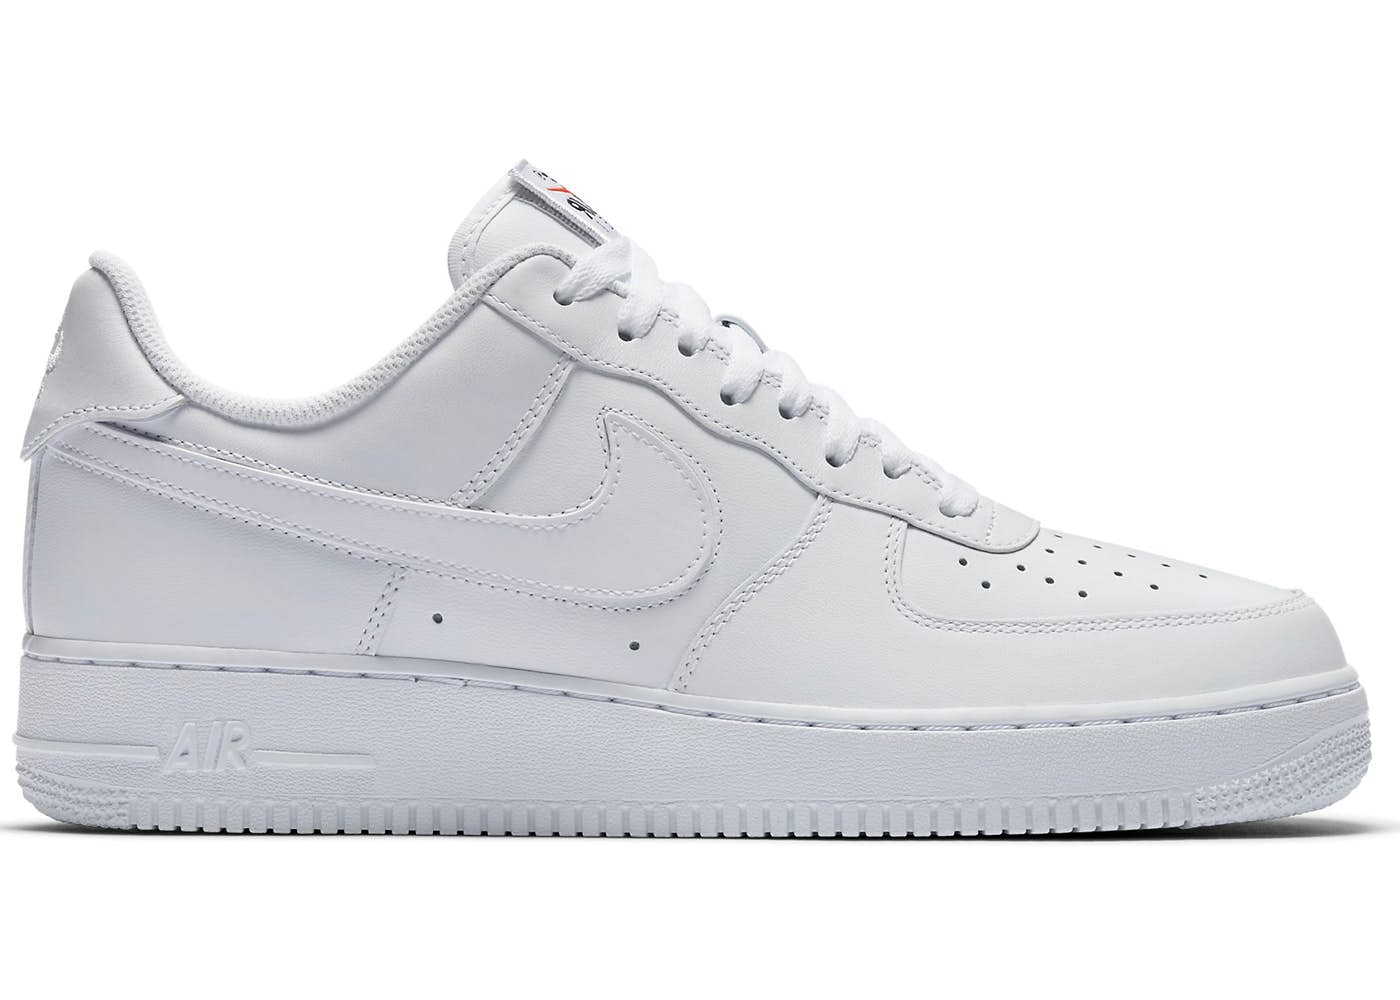 swoosh nike air force 1